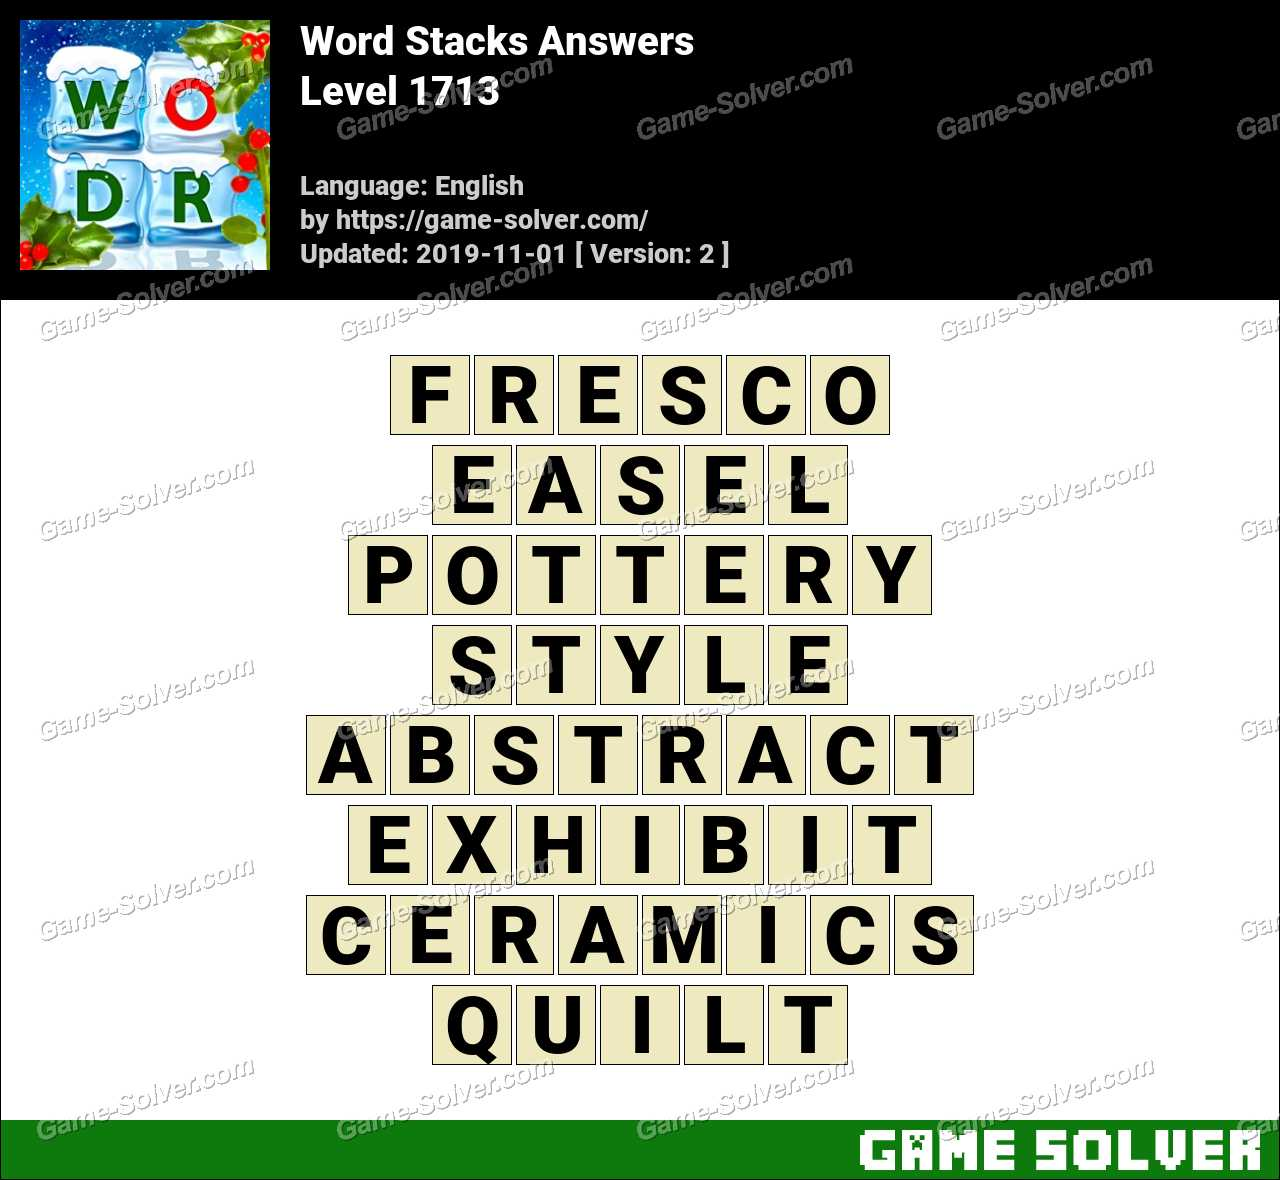 Word Stacks Level 1713 Answers